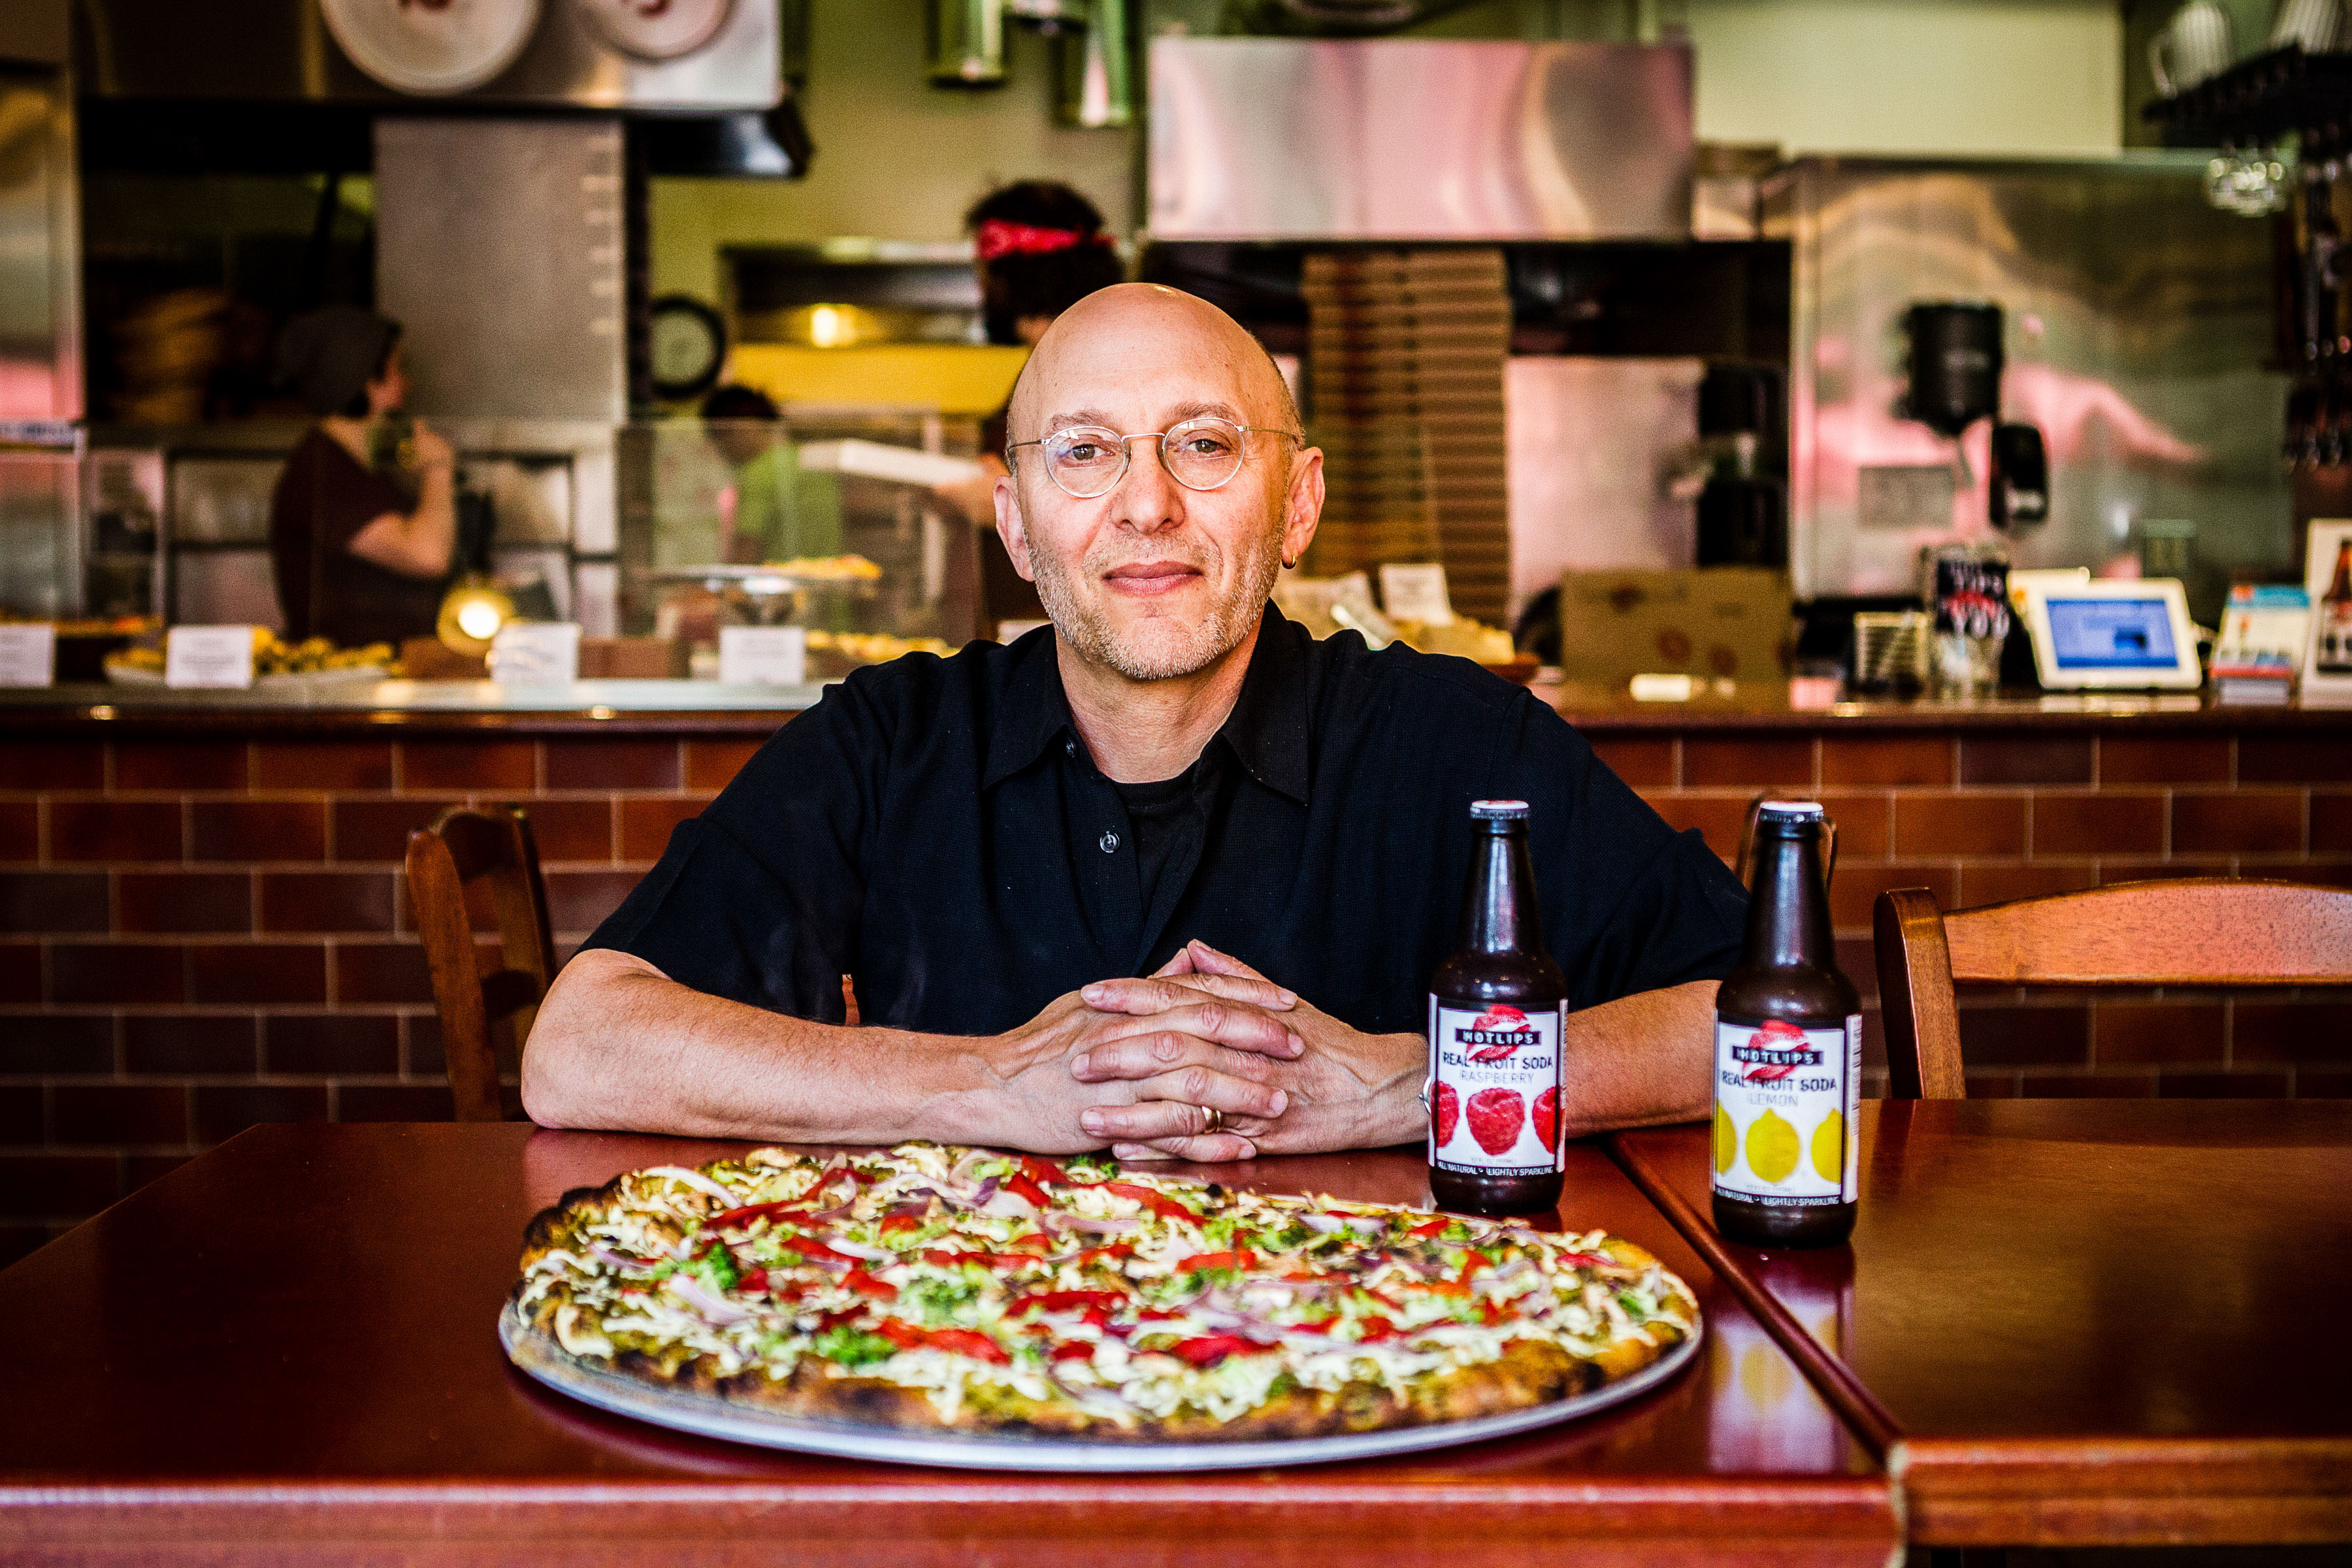 David Yudkin, Founder of Hot Lips Pizza pictured behind pizza pie